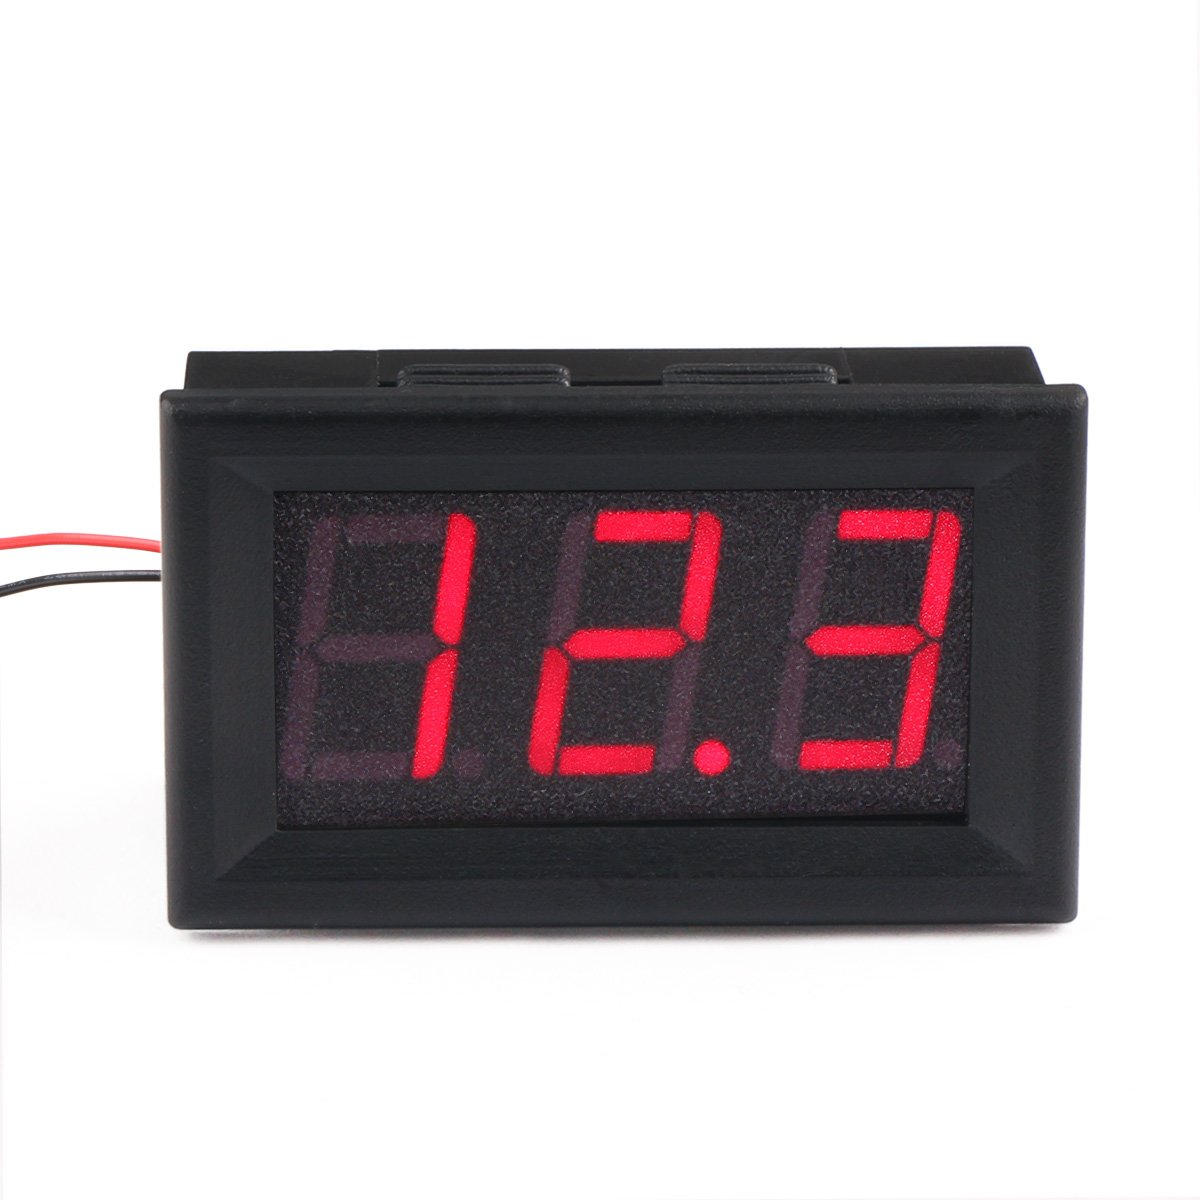 Digital Voltage Meter 12V, DROK LED Display Voltmeter Panel Precision Variable 2 Wires 3 Digits DC3.5-30V Voltage Tester 12V/24V Volt Reader Gauge Car Vehicle Solar Boat Battery Monitor Detector 100123